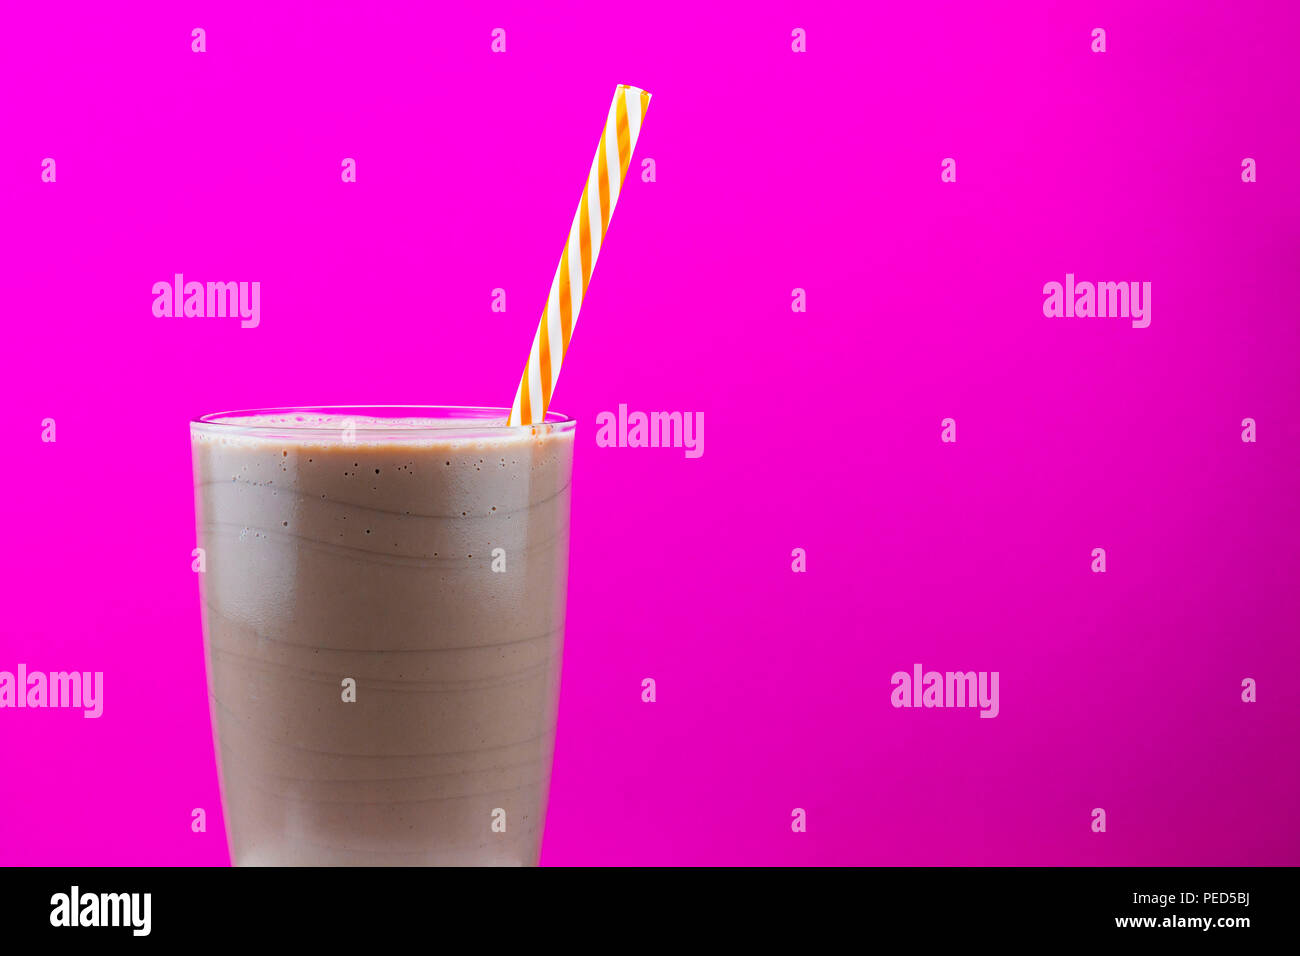 Chocolate milkshake in a glass with a straw against a bright pink background with copy space - Stock Image